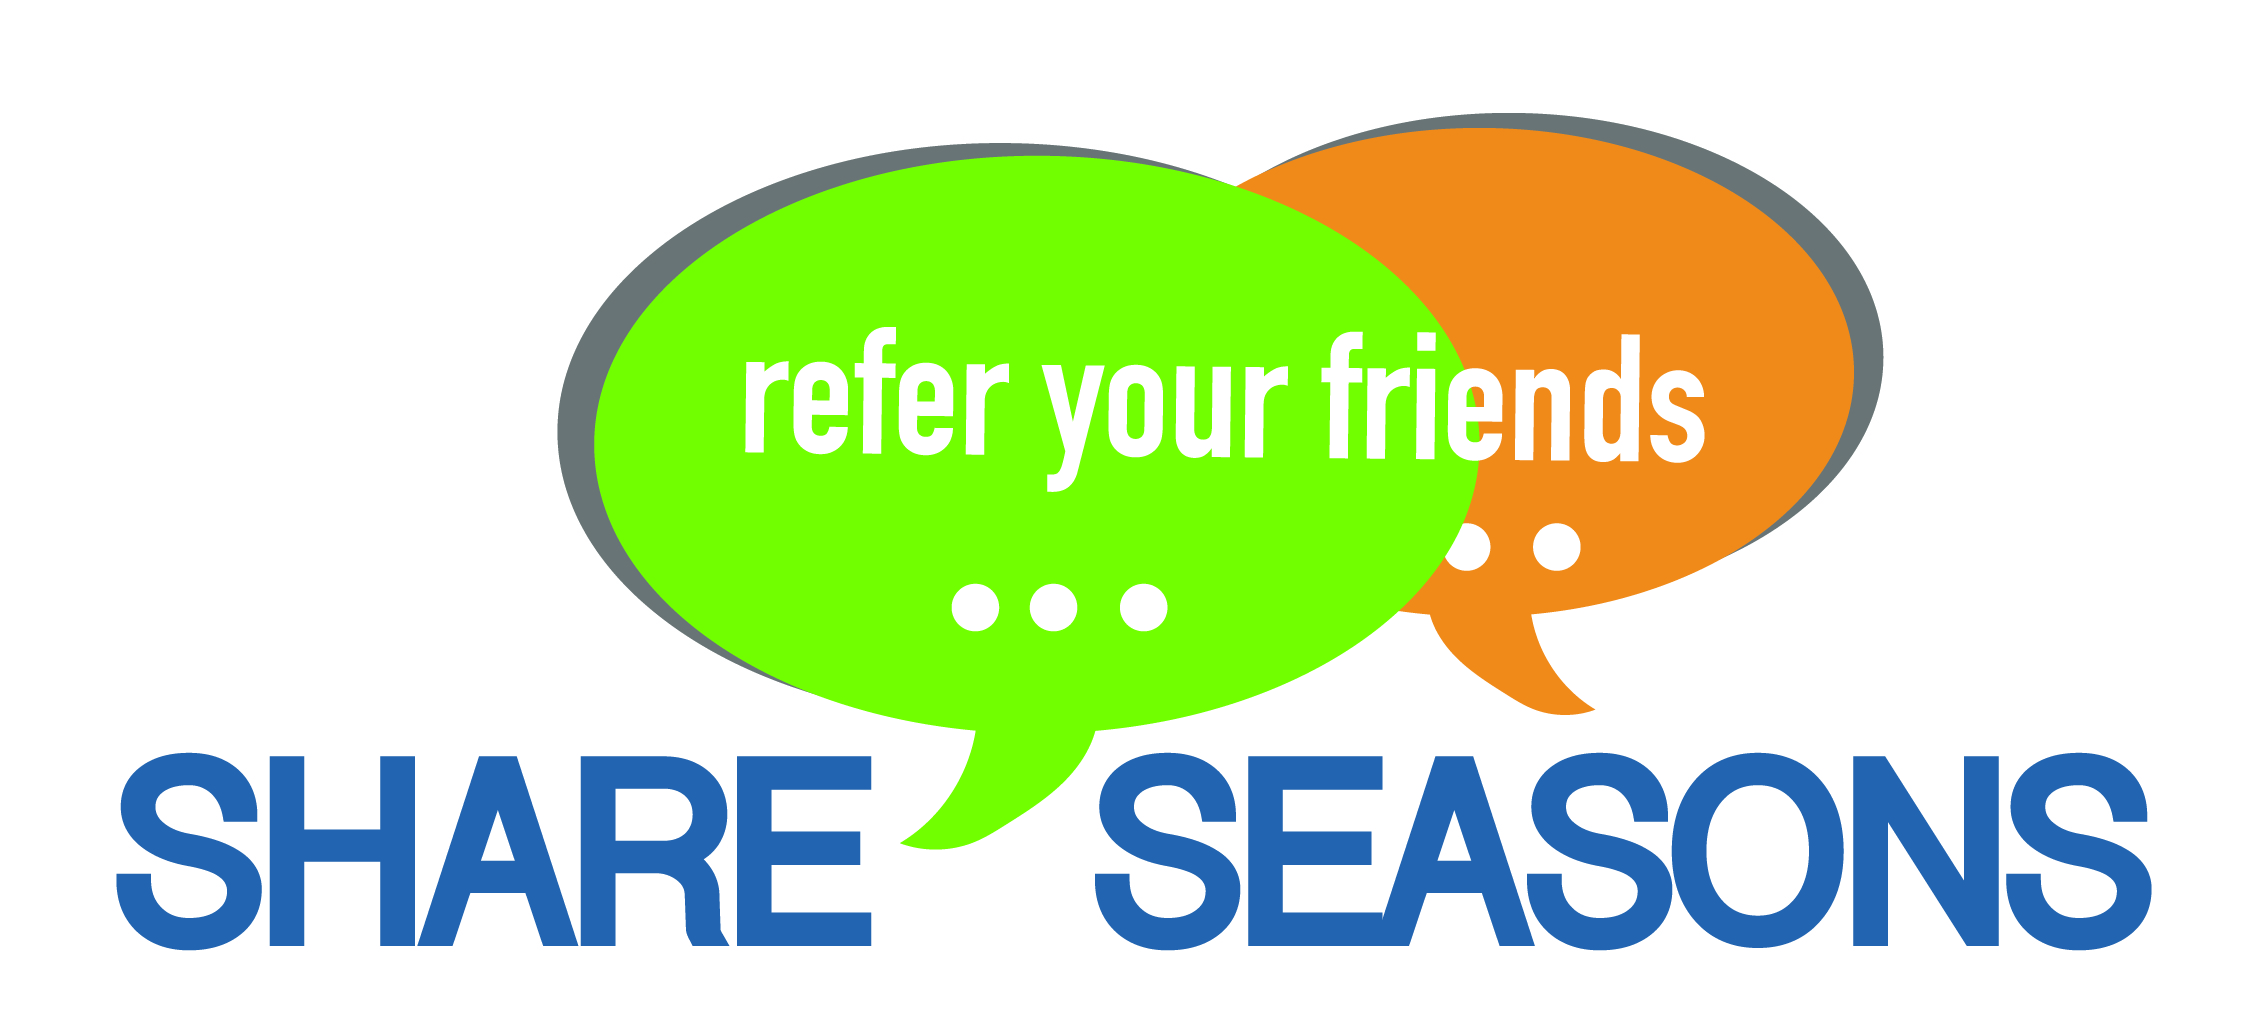 Share Seasons Logo. Refer your friends.